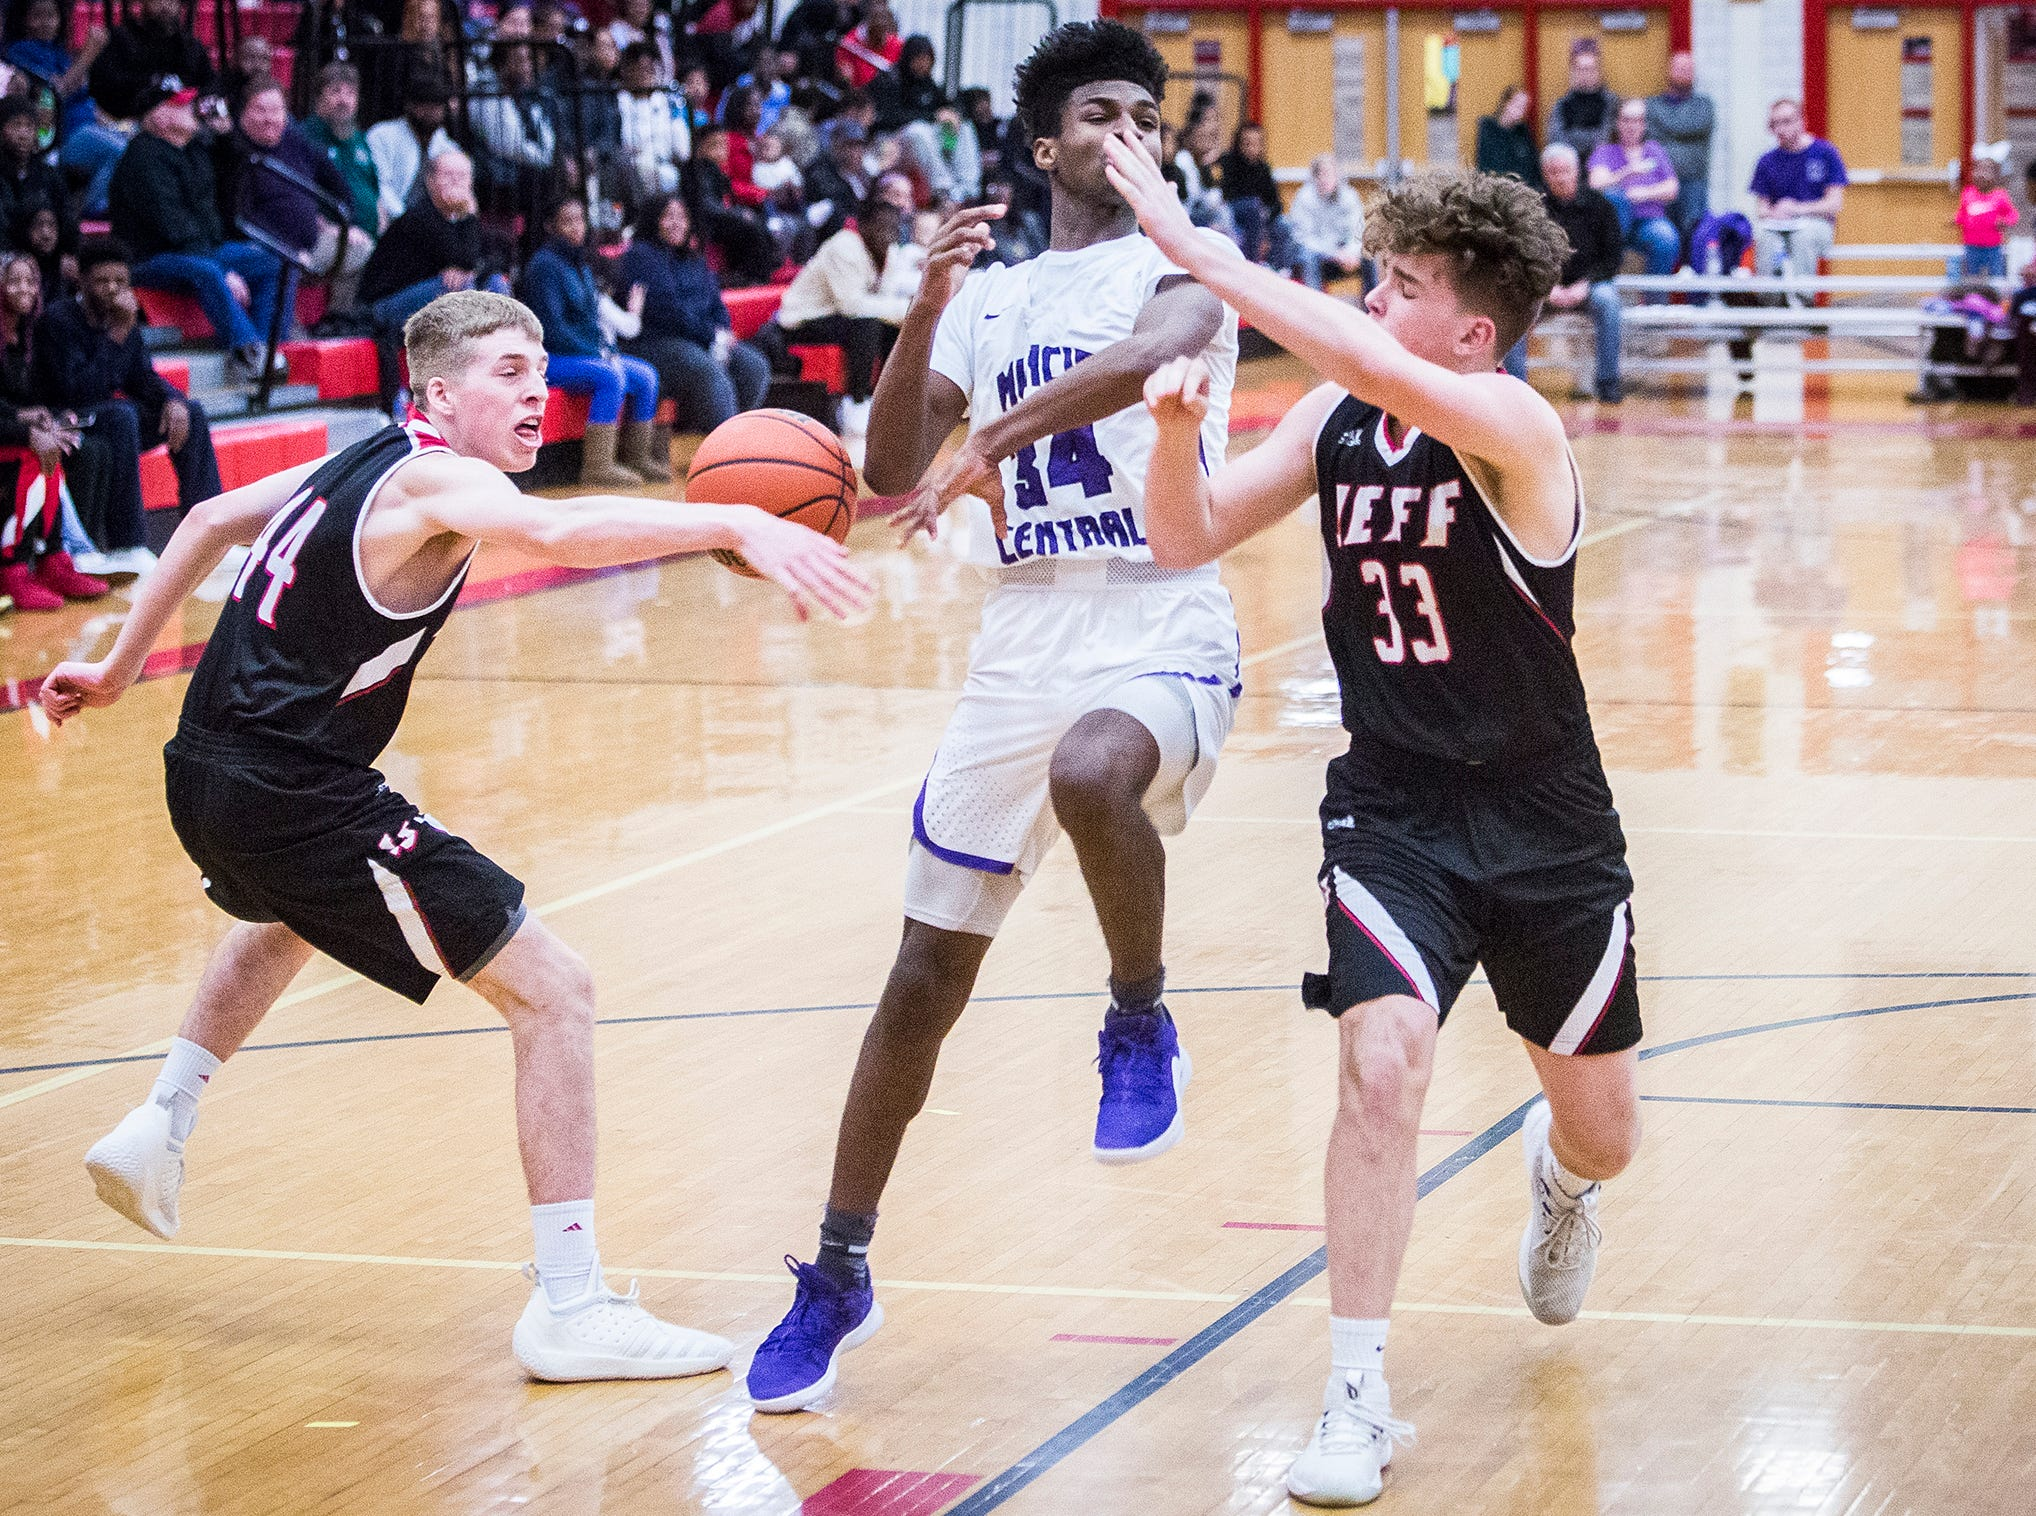 Central faces off against Lafayette Jefferson during their game at Southside Middle School Friday, Jan. 4, 2019.